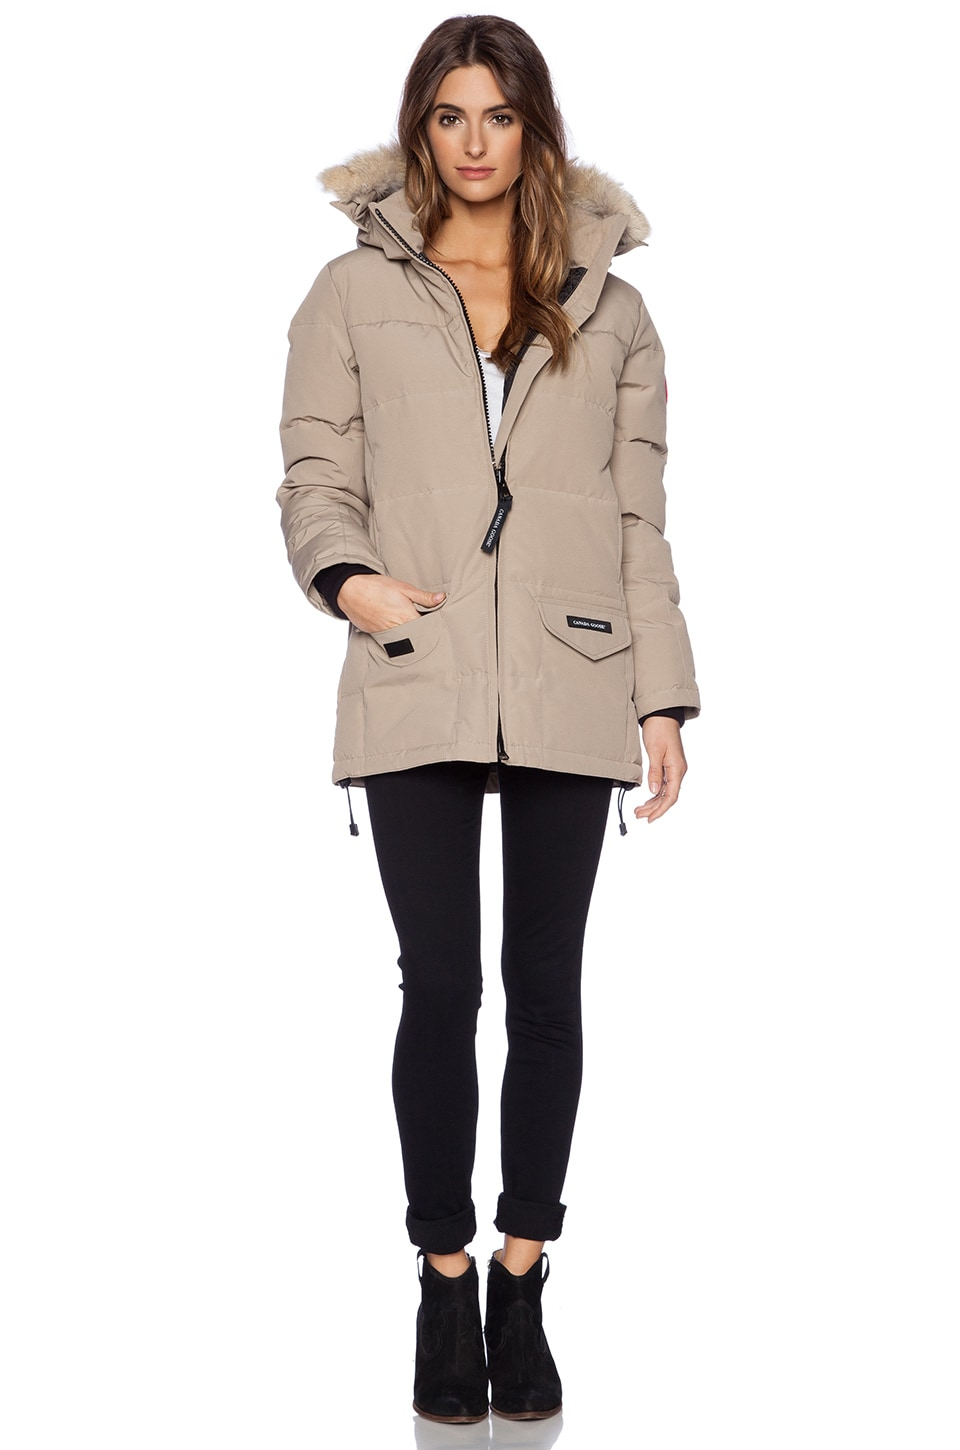 Canada Goose chilliwack parka online discounts - Canada Goose Solaris Parka with Coyote Fur Trim in Tan | REVOLVE